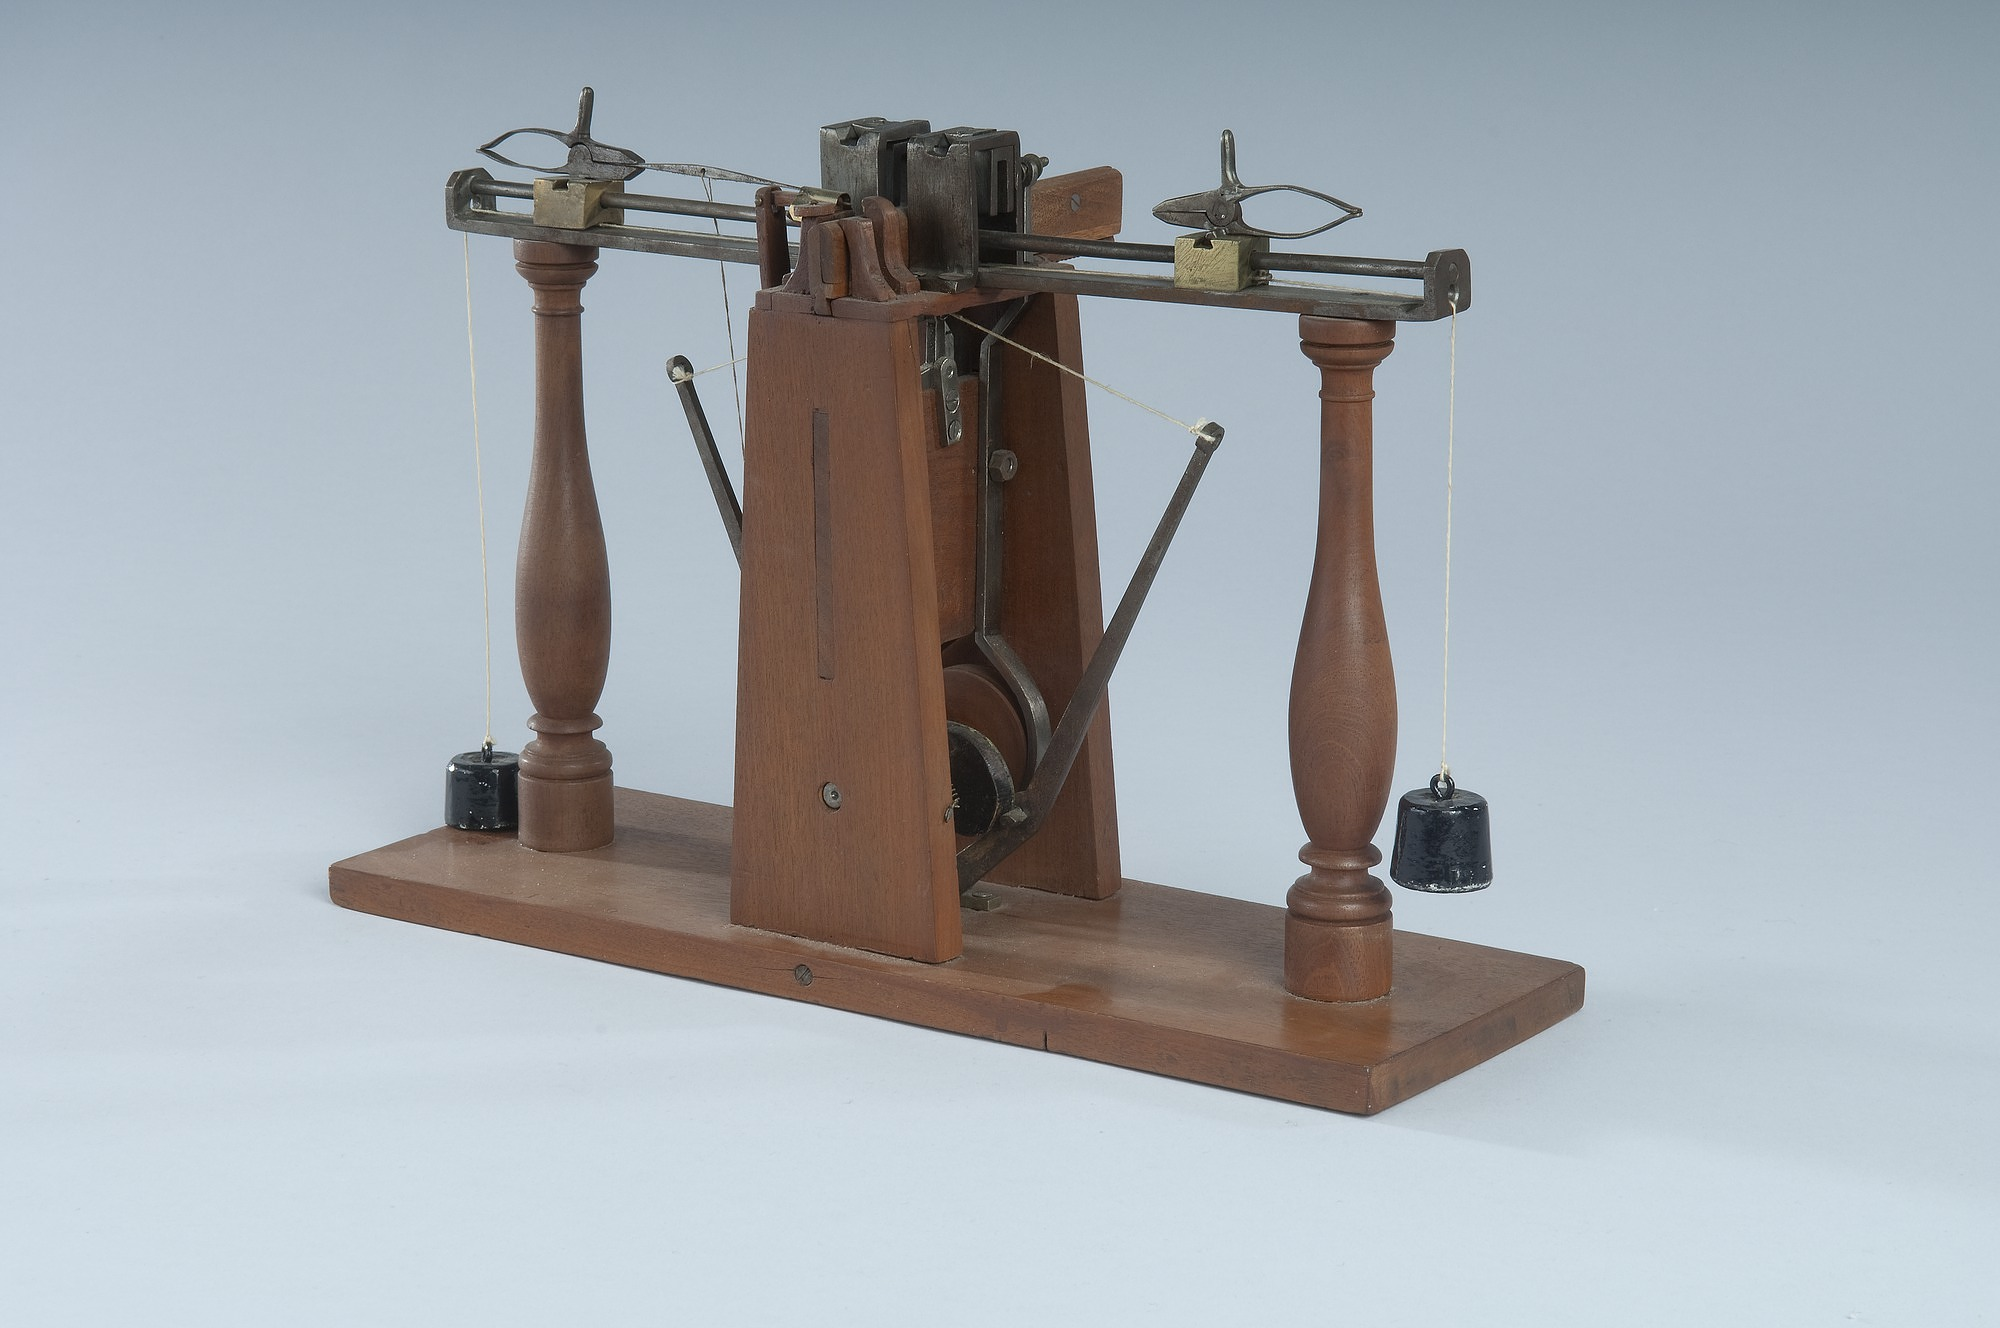 1842 Greenoughs Patent Model Of A Sewing Machine National Museum Vintage Threading Guides Stitch Nerd